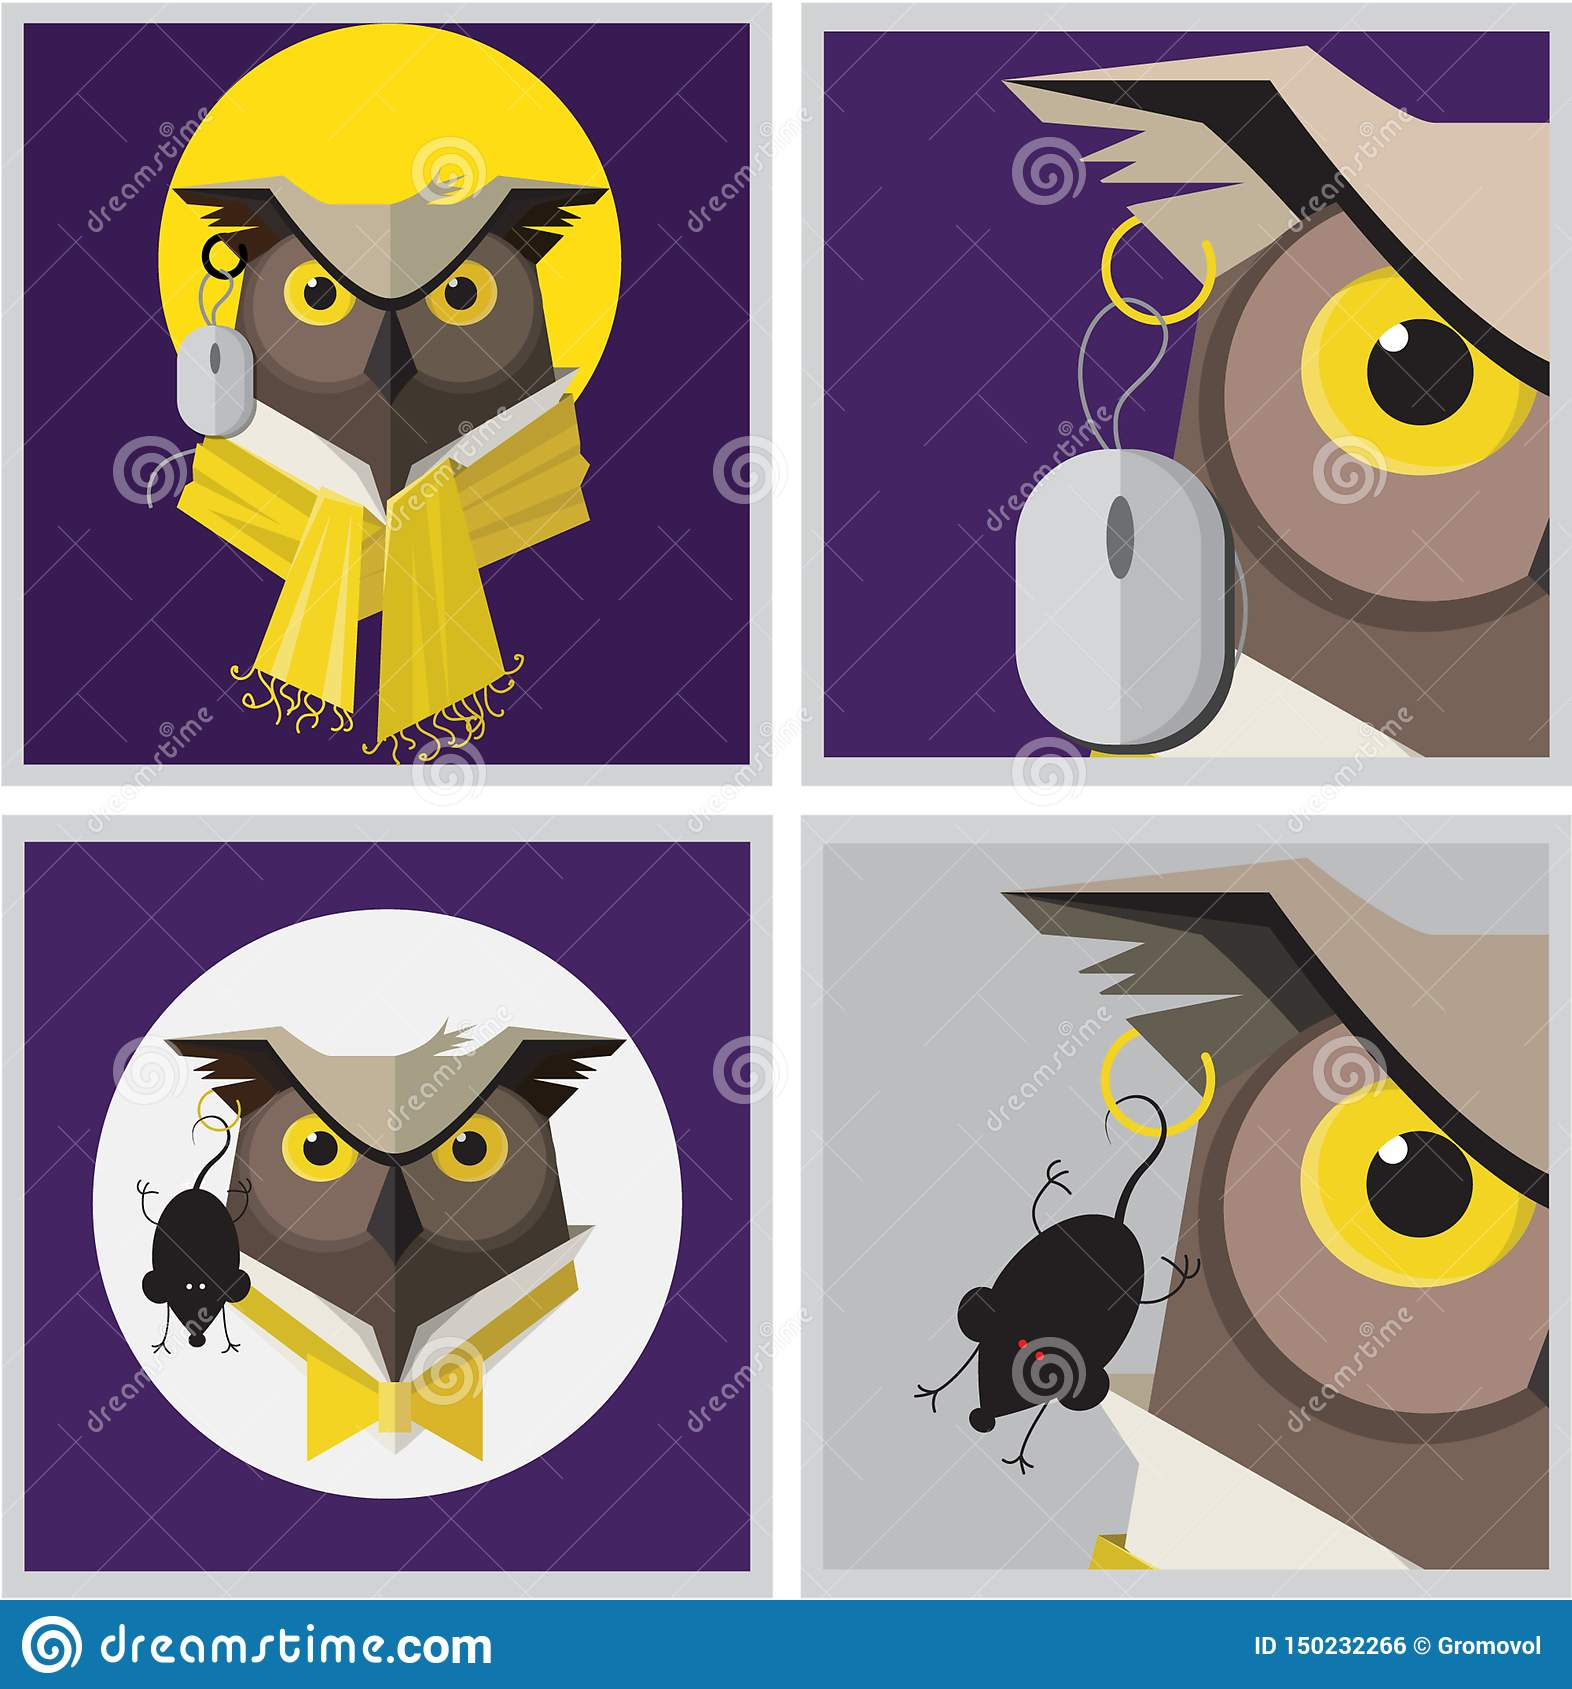 Vector image of an eagle owl earring